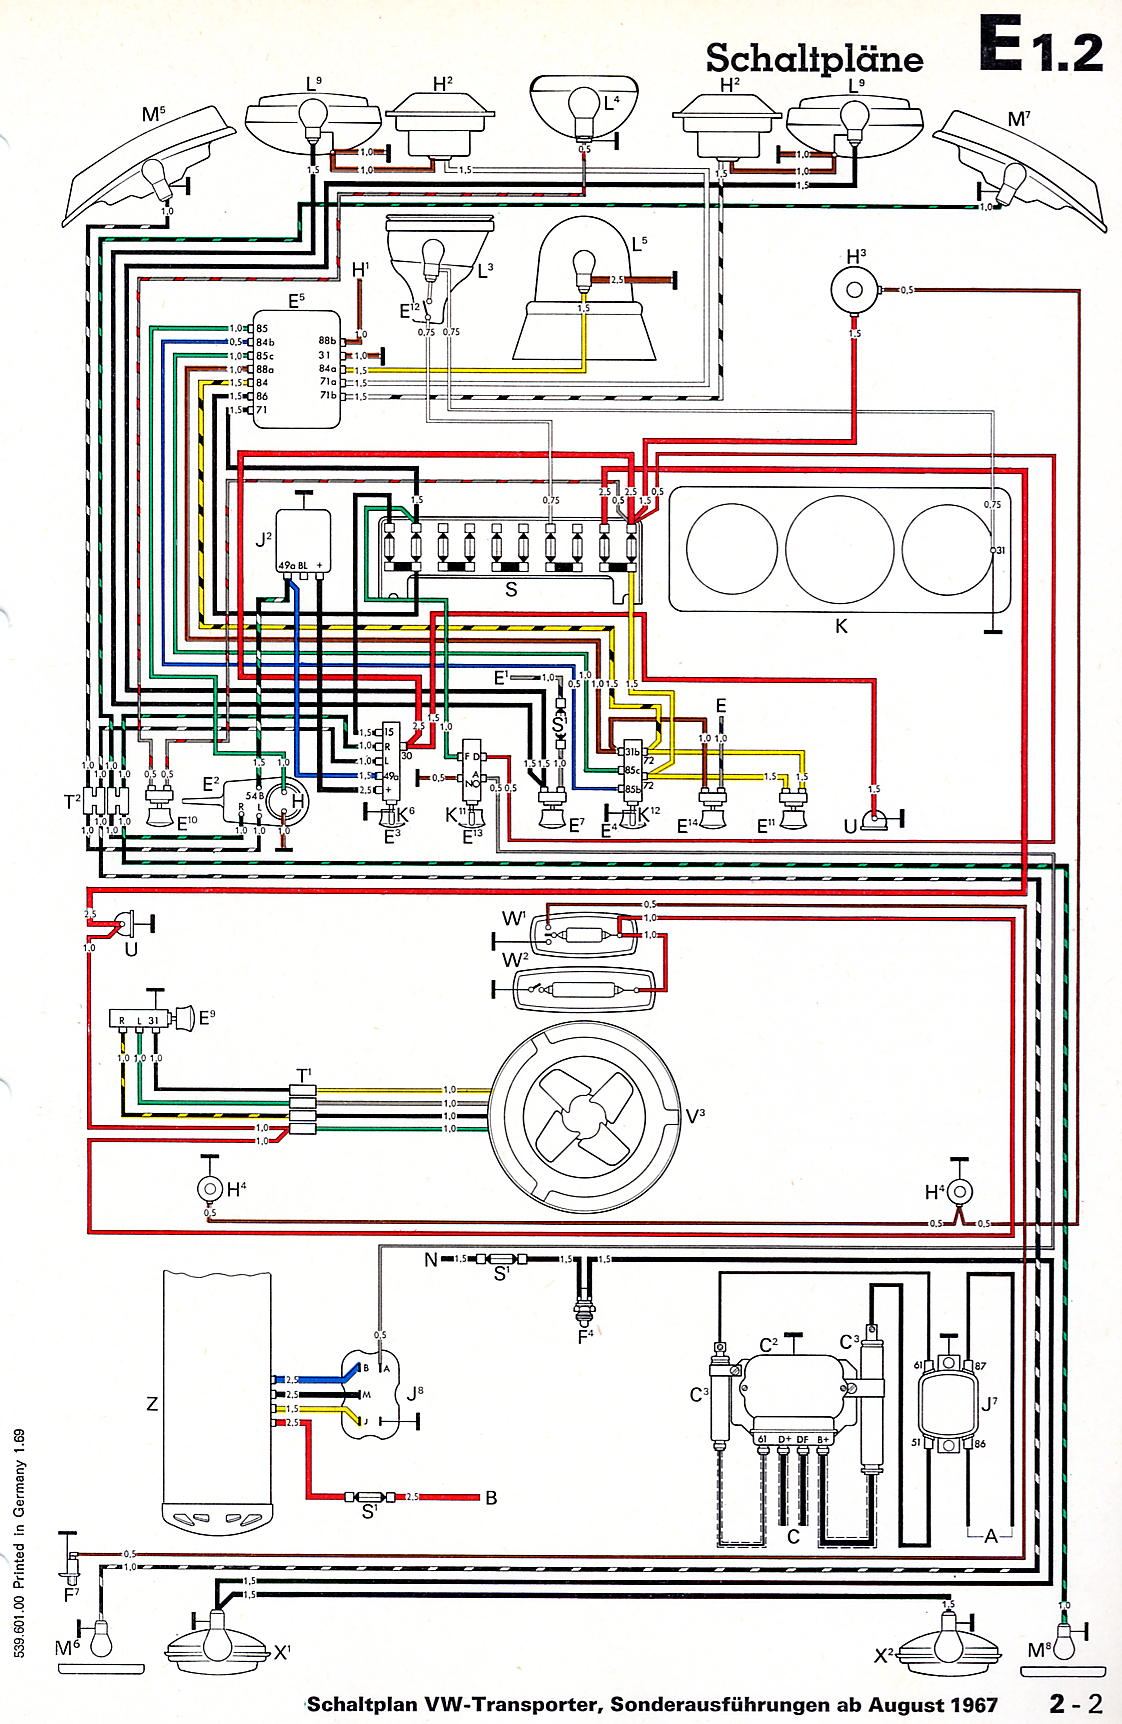 1990 Chrysler Lebaron Fuse Box Diagram Wiring Schematic Thesamba Com Bay Window Bus View Topic 69